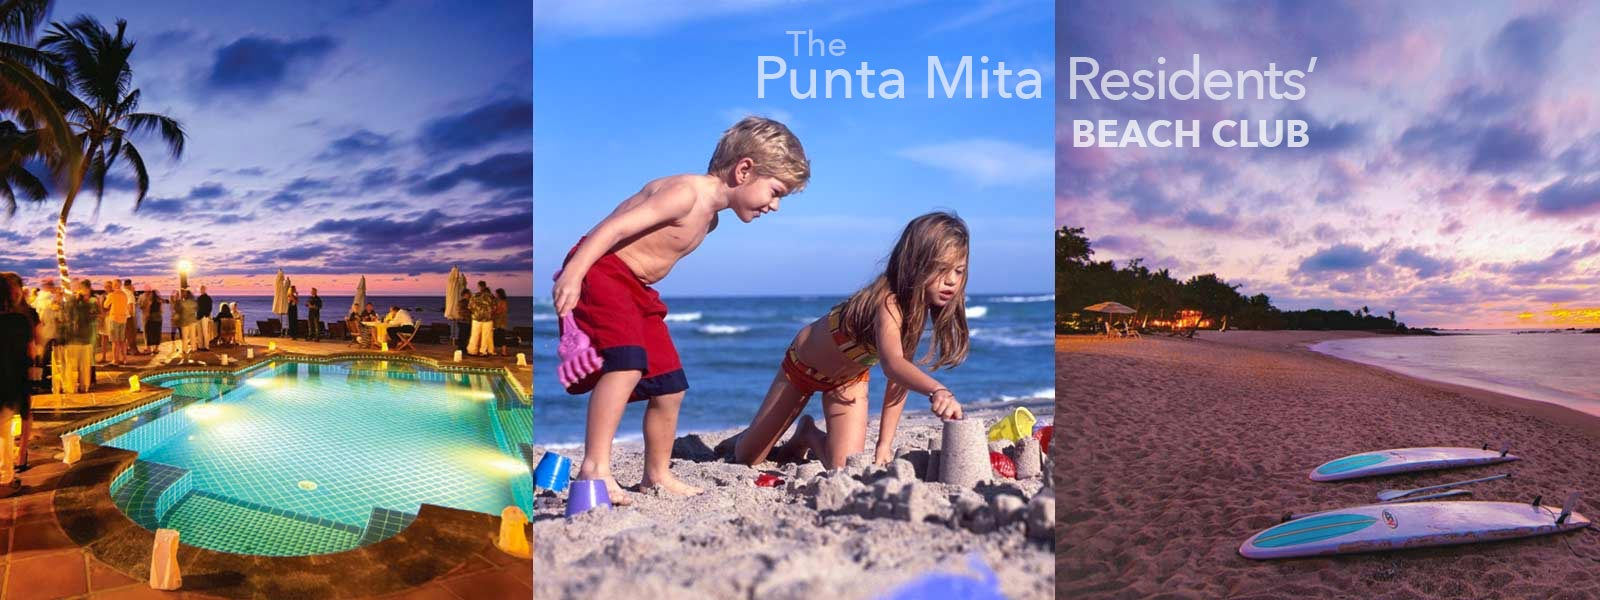 There are two residents beach clubs atthe Punta Mita Resort